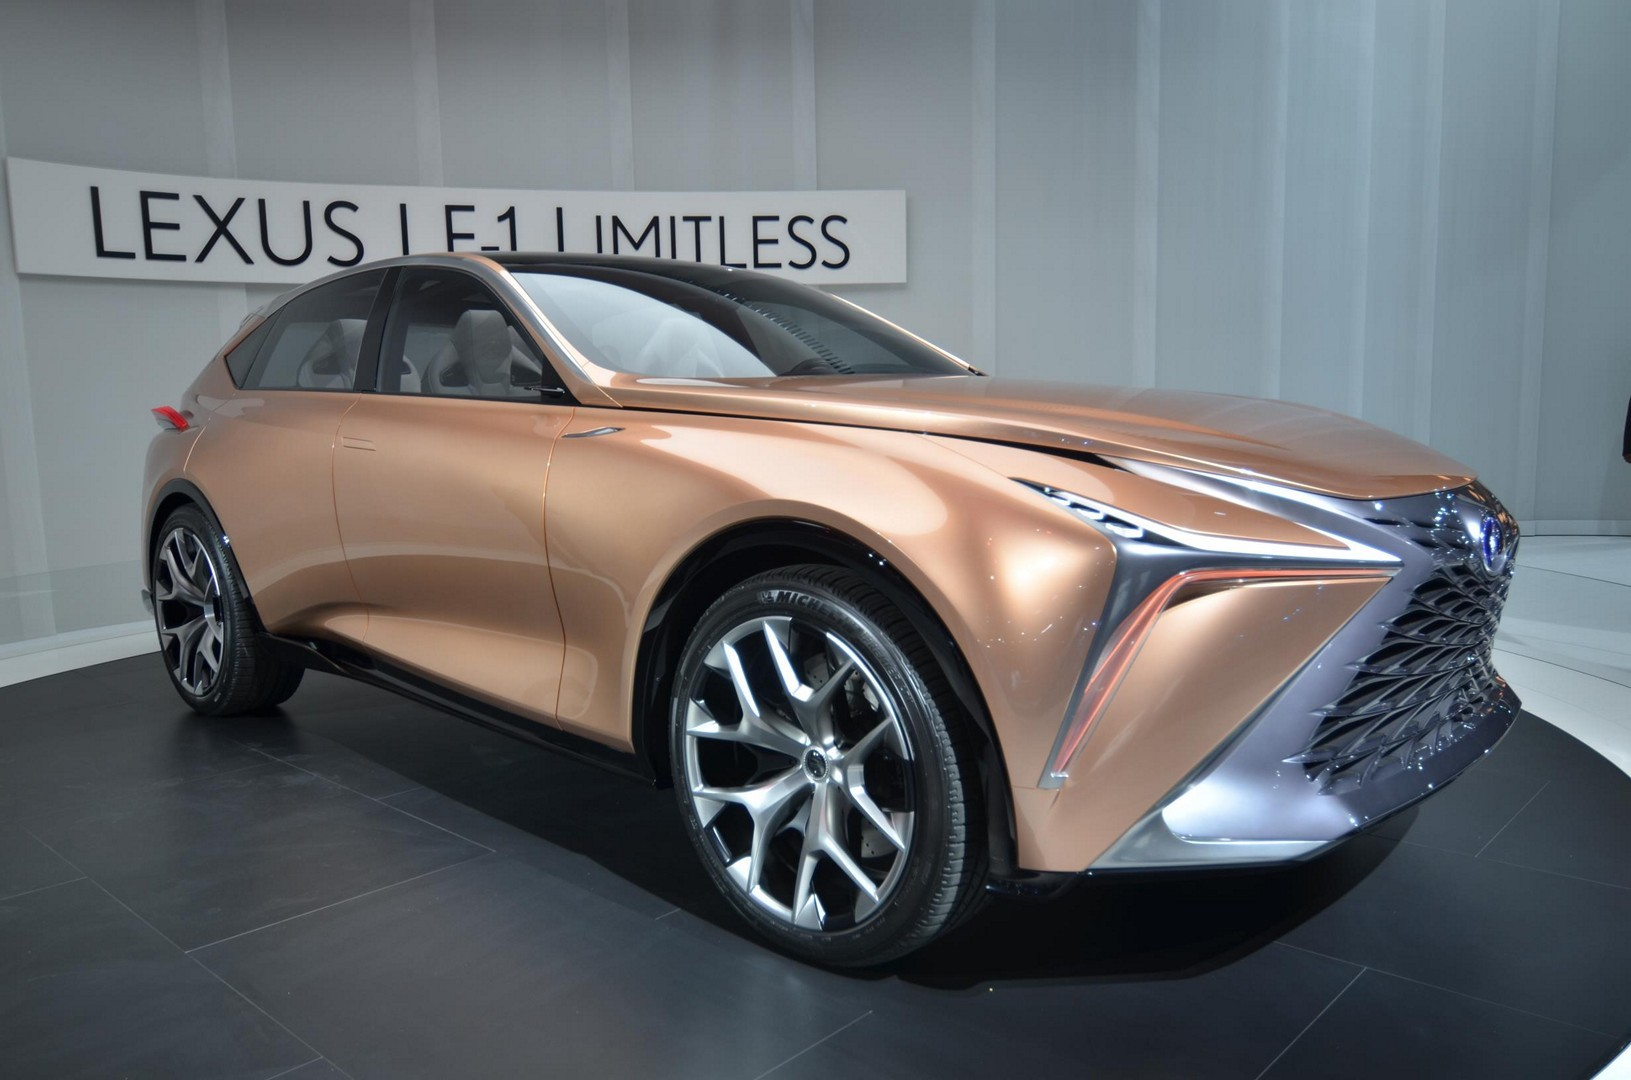 Lexus Rz 450e Luxury Electric Car Gets Trademarked In America And Europe Autoevolution